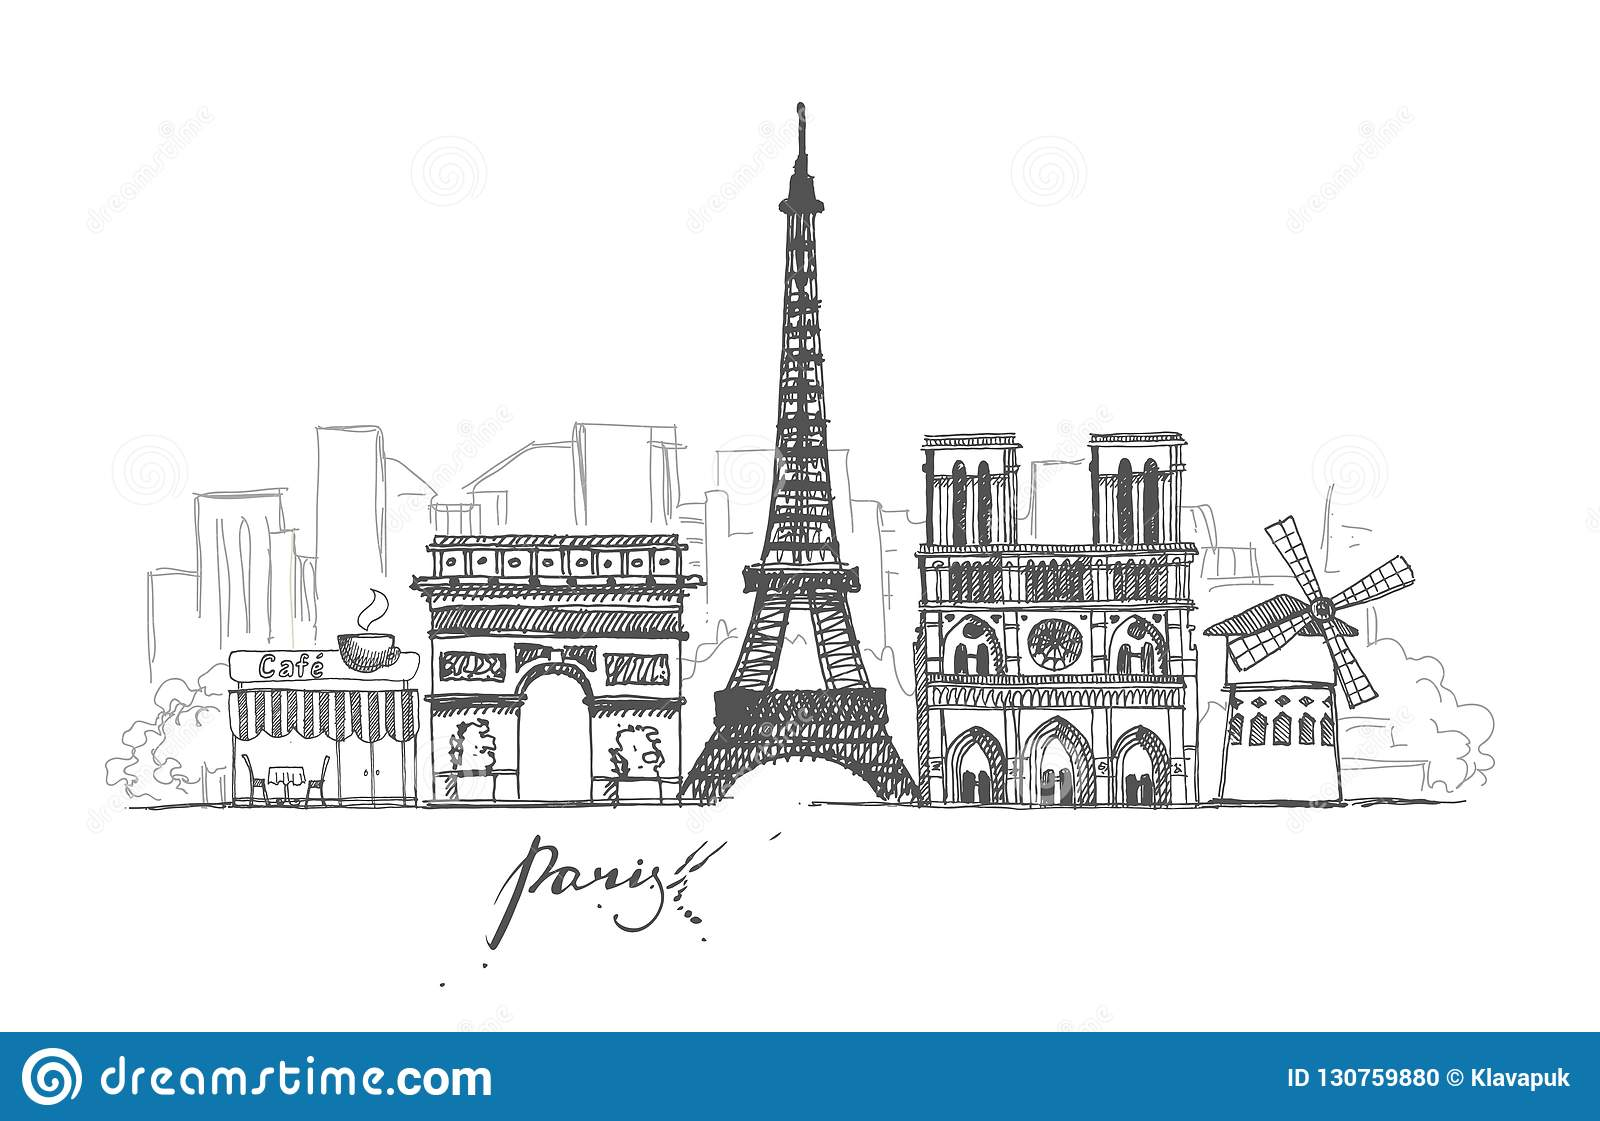 A set of sketches on the theme of paris in retro style abstract cityscape with landmarks